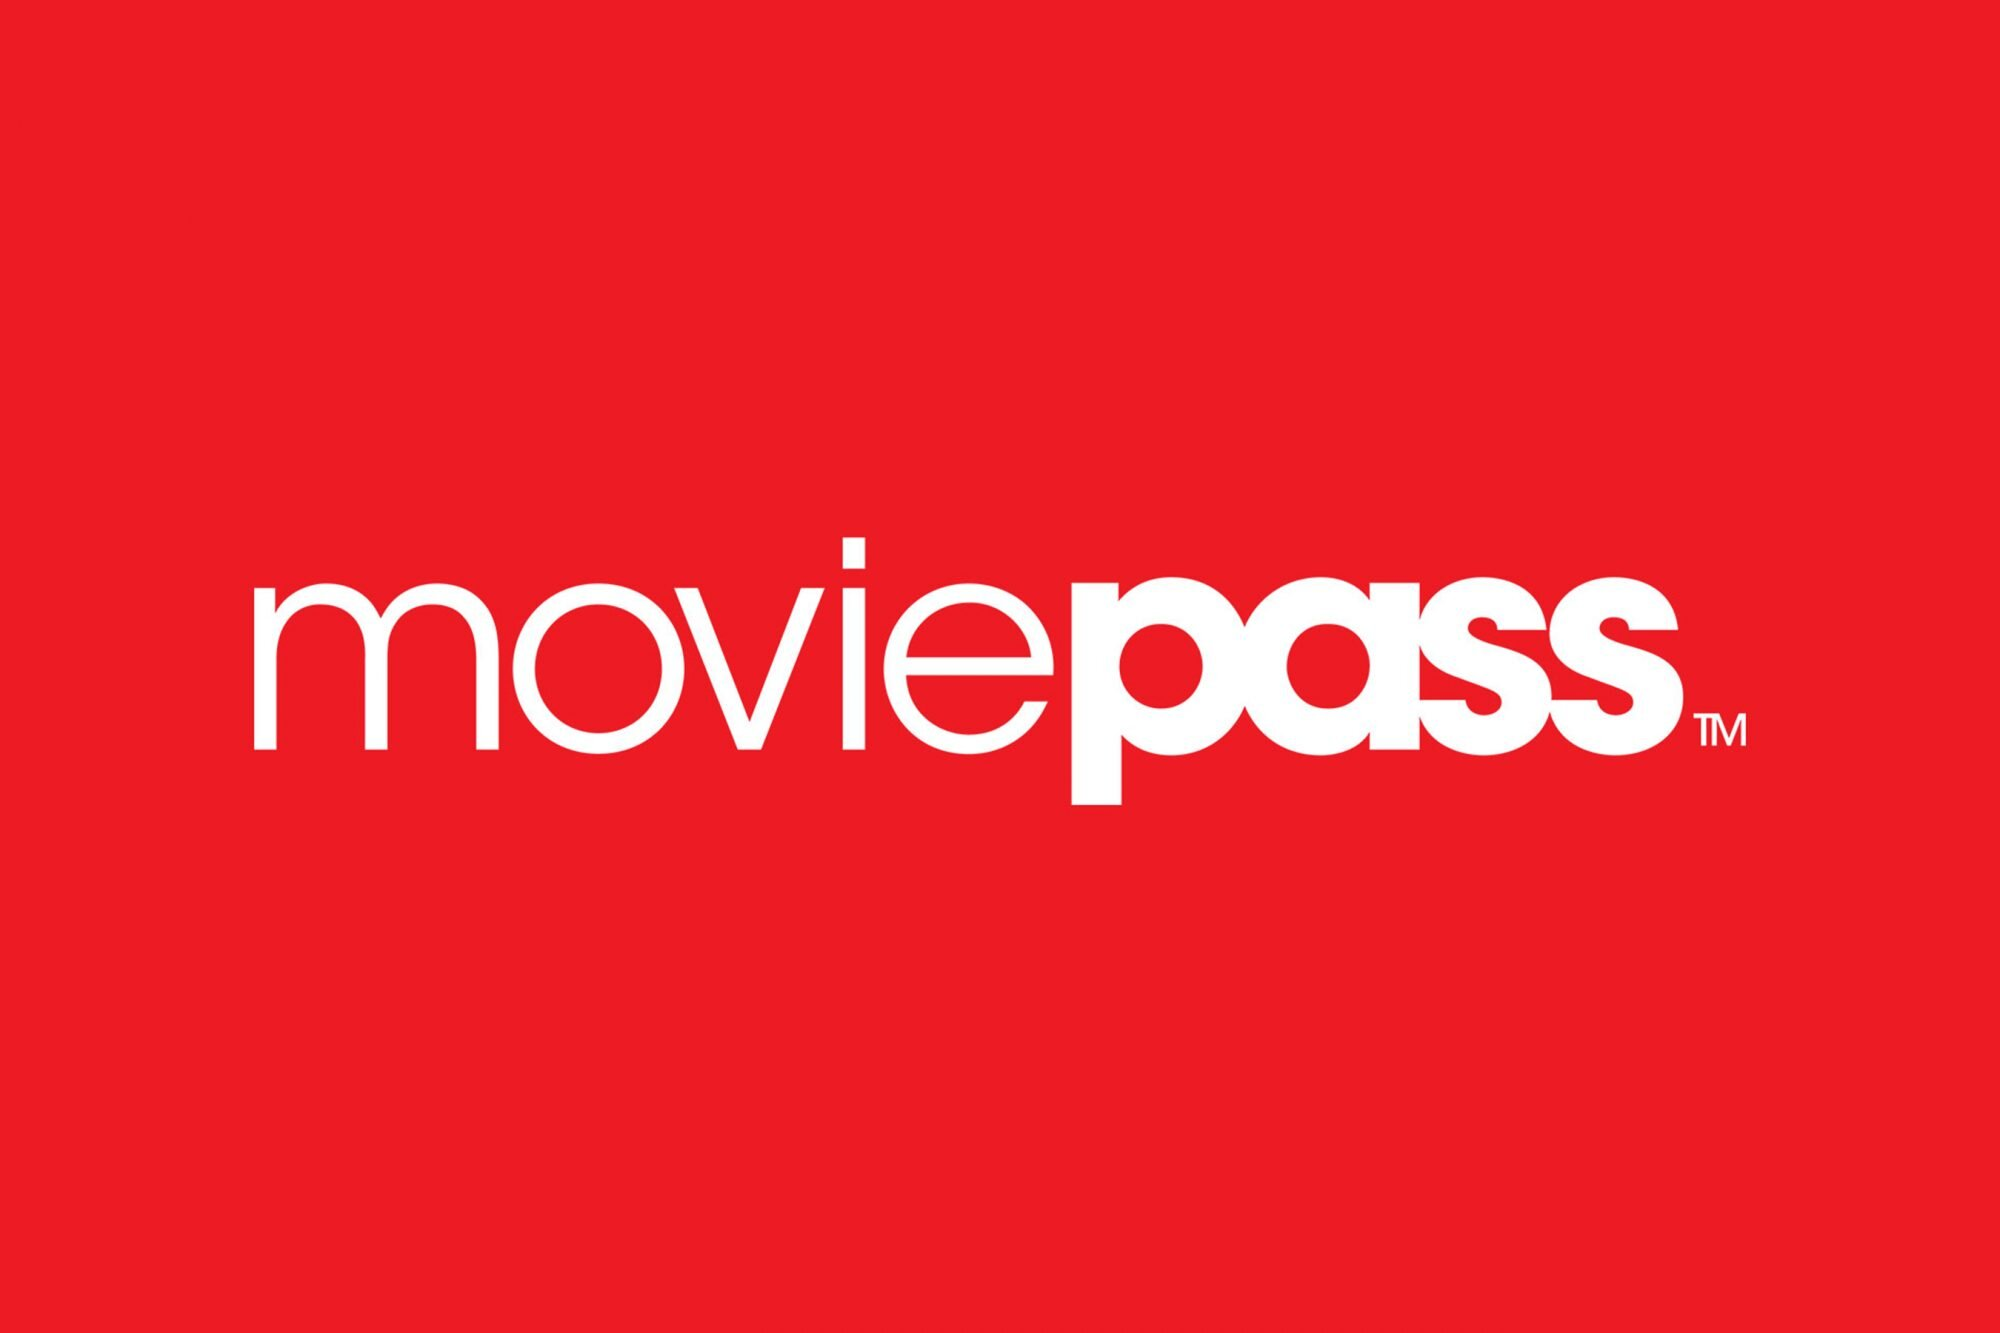 MoviePass dead: Movie subscription service shuts down | EW.com